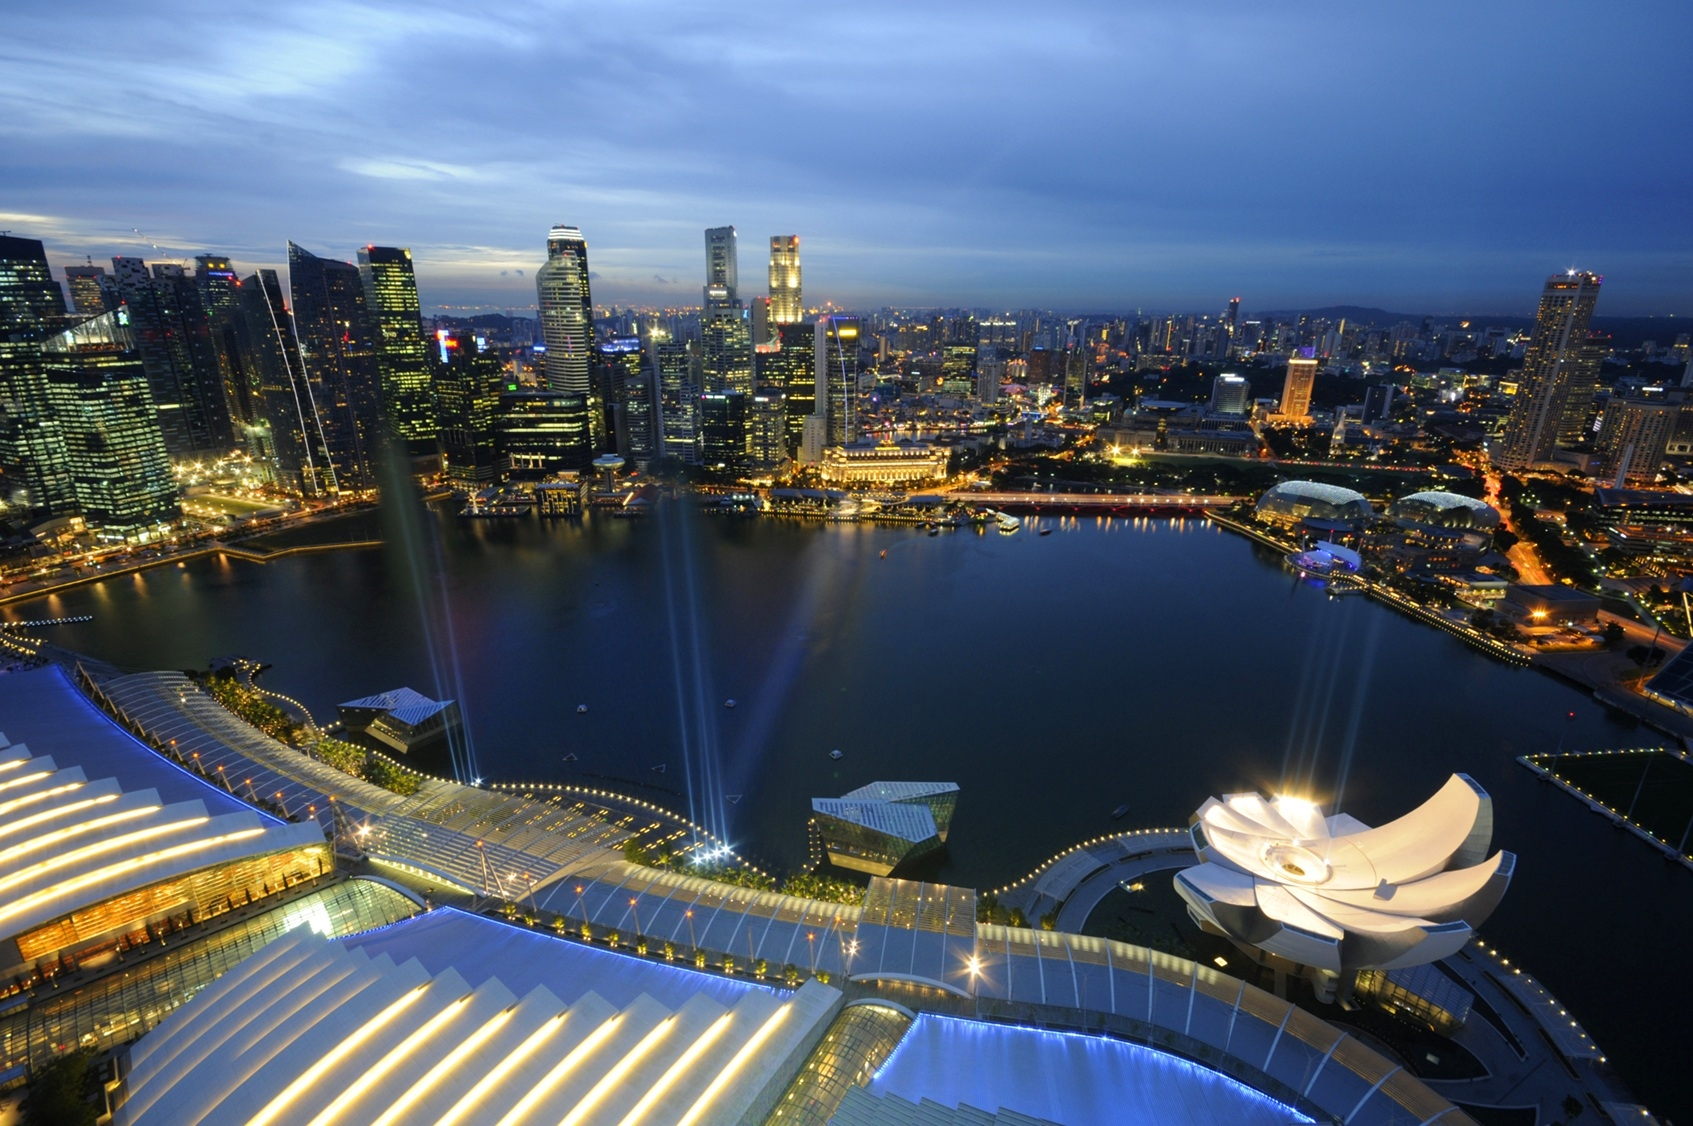 【新加坡酒店】俯瞰新加坡的最美的夜景-滨海湾金沙酒店(Marina Bay Sands)